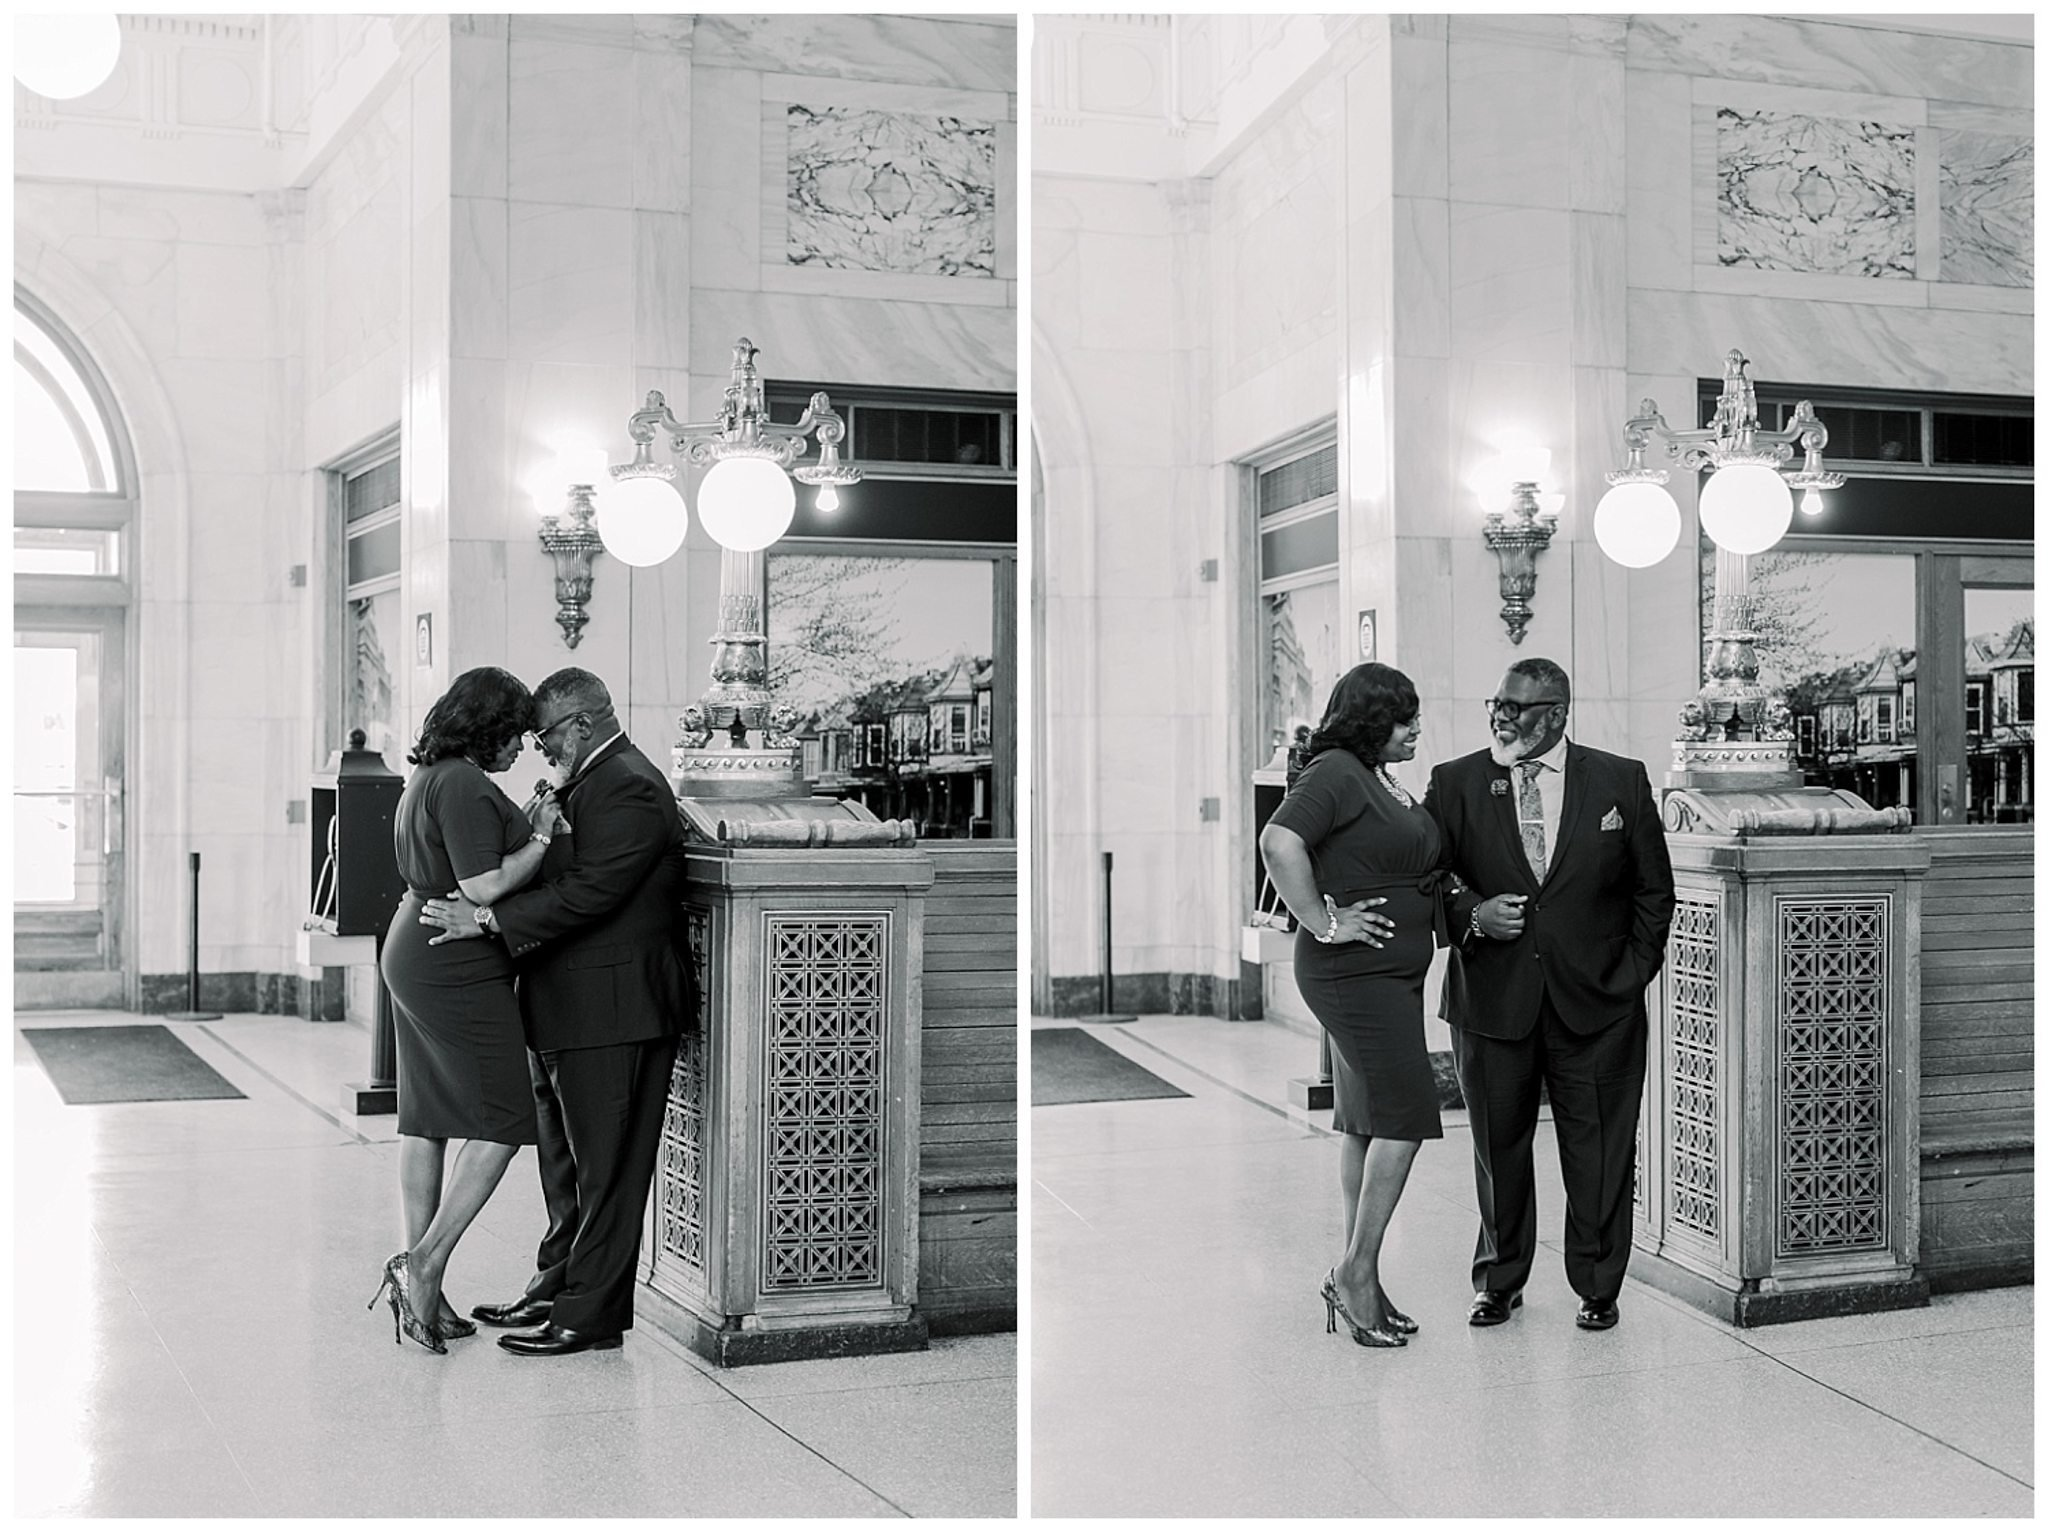 baltimore,baltimore penn station,penn station baltimore,federal hill baltimore,engagement photos, Nichole & Alan Engagement Session Penn Station Baltimore MD, Fine Art Wedding Photographer Baltimore MD